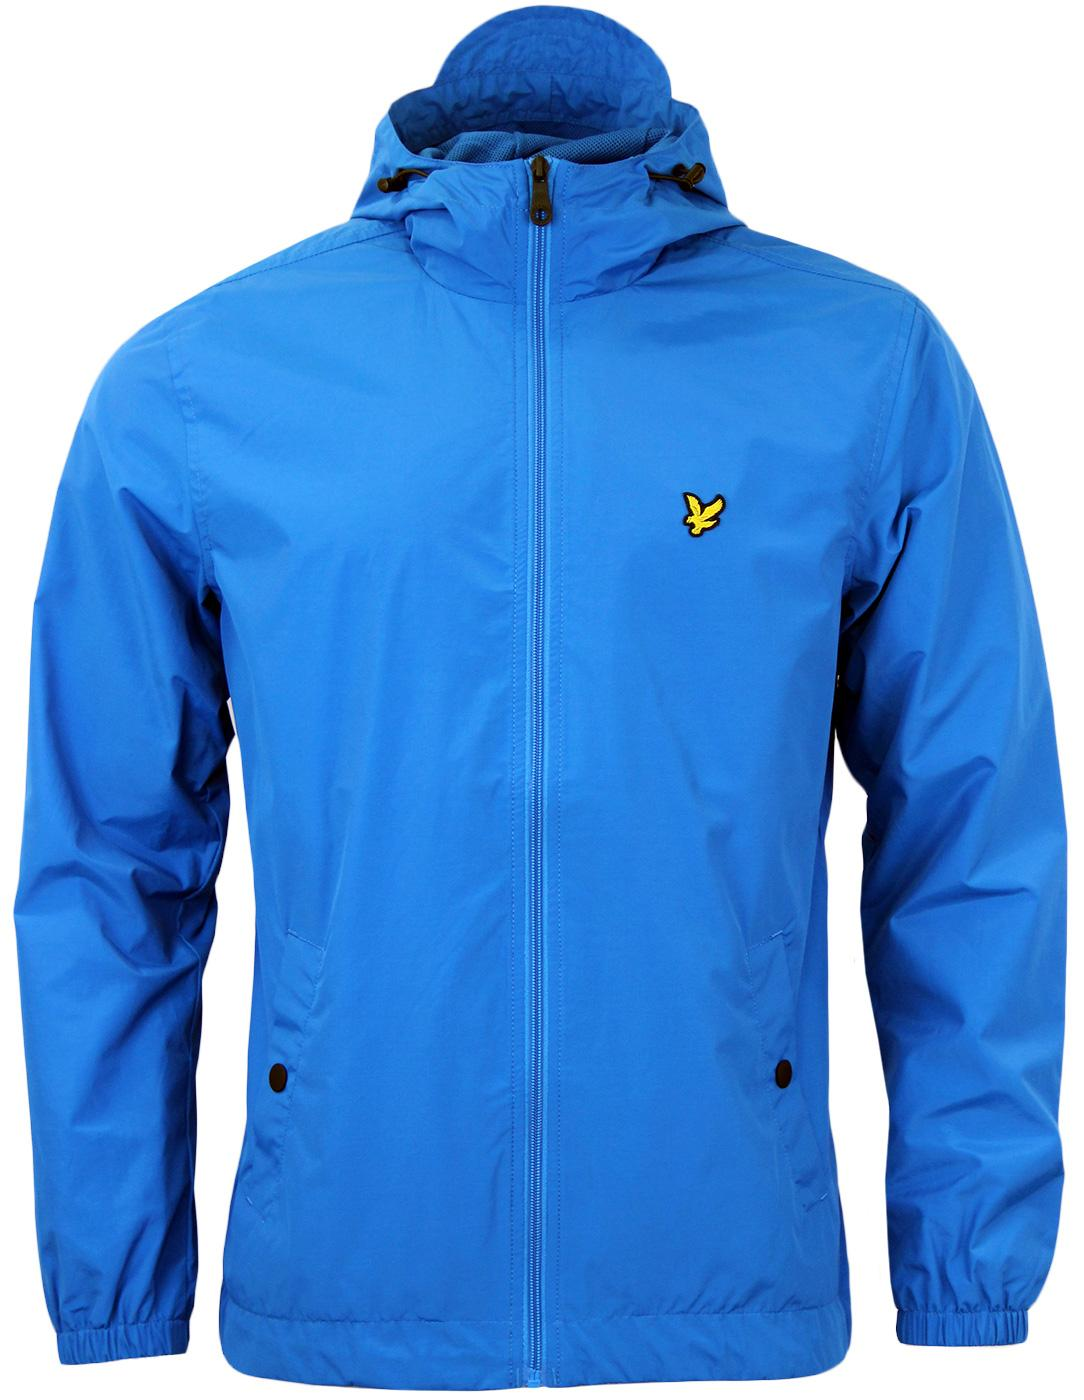 LYLE & SCOTT Retro Mod Light Weight Hooded Jacket